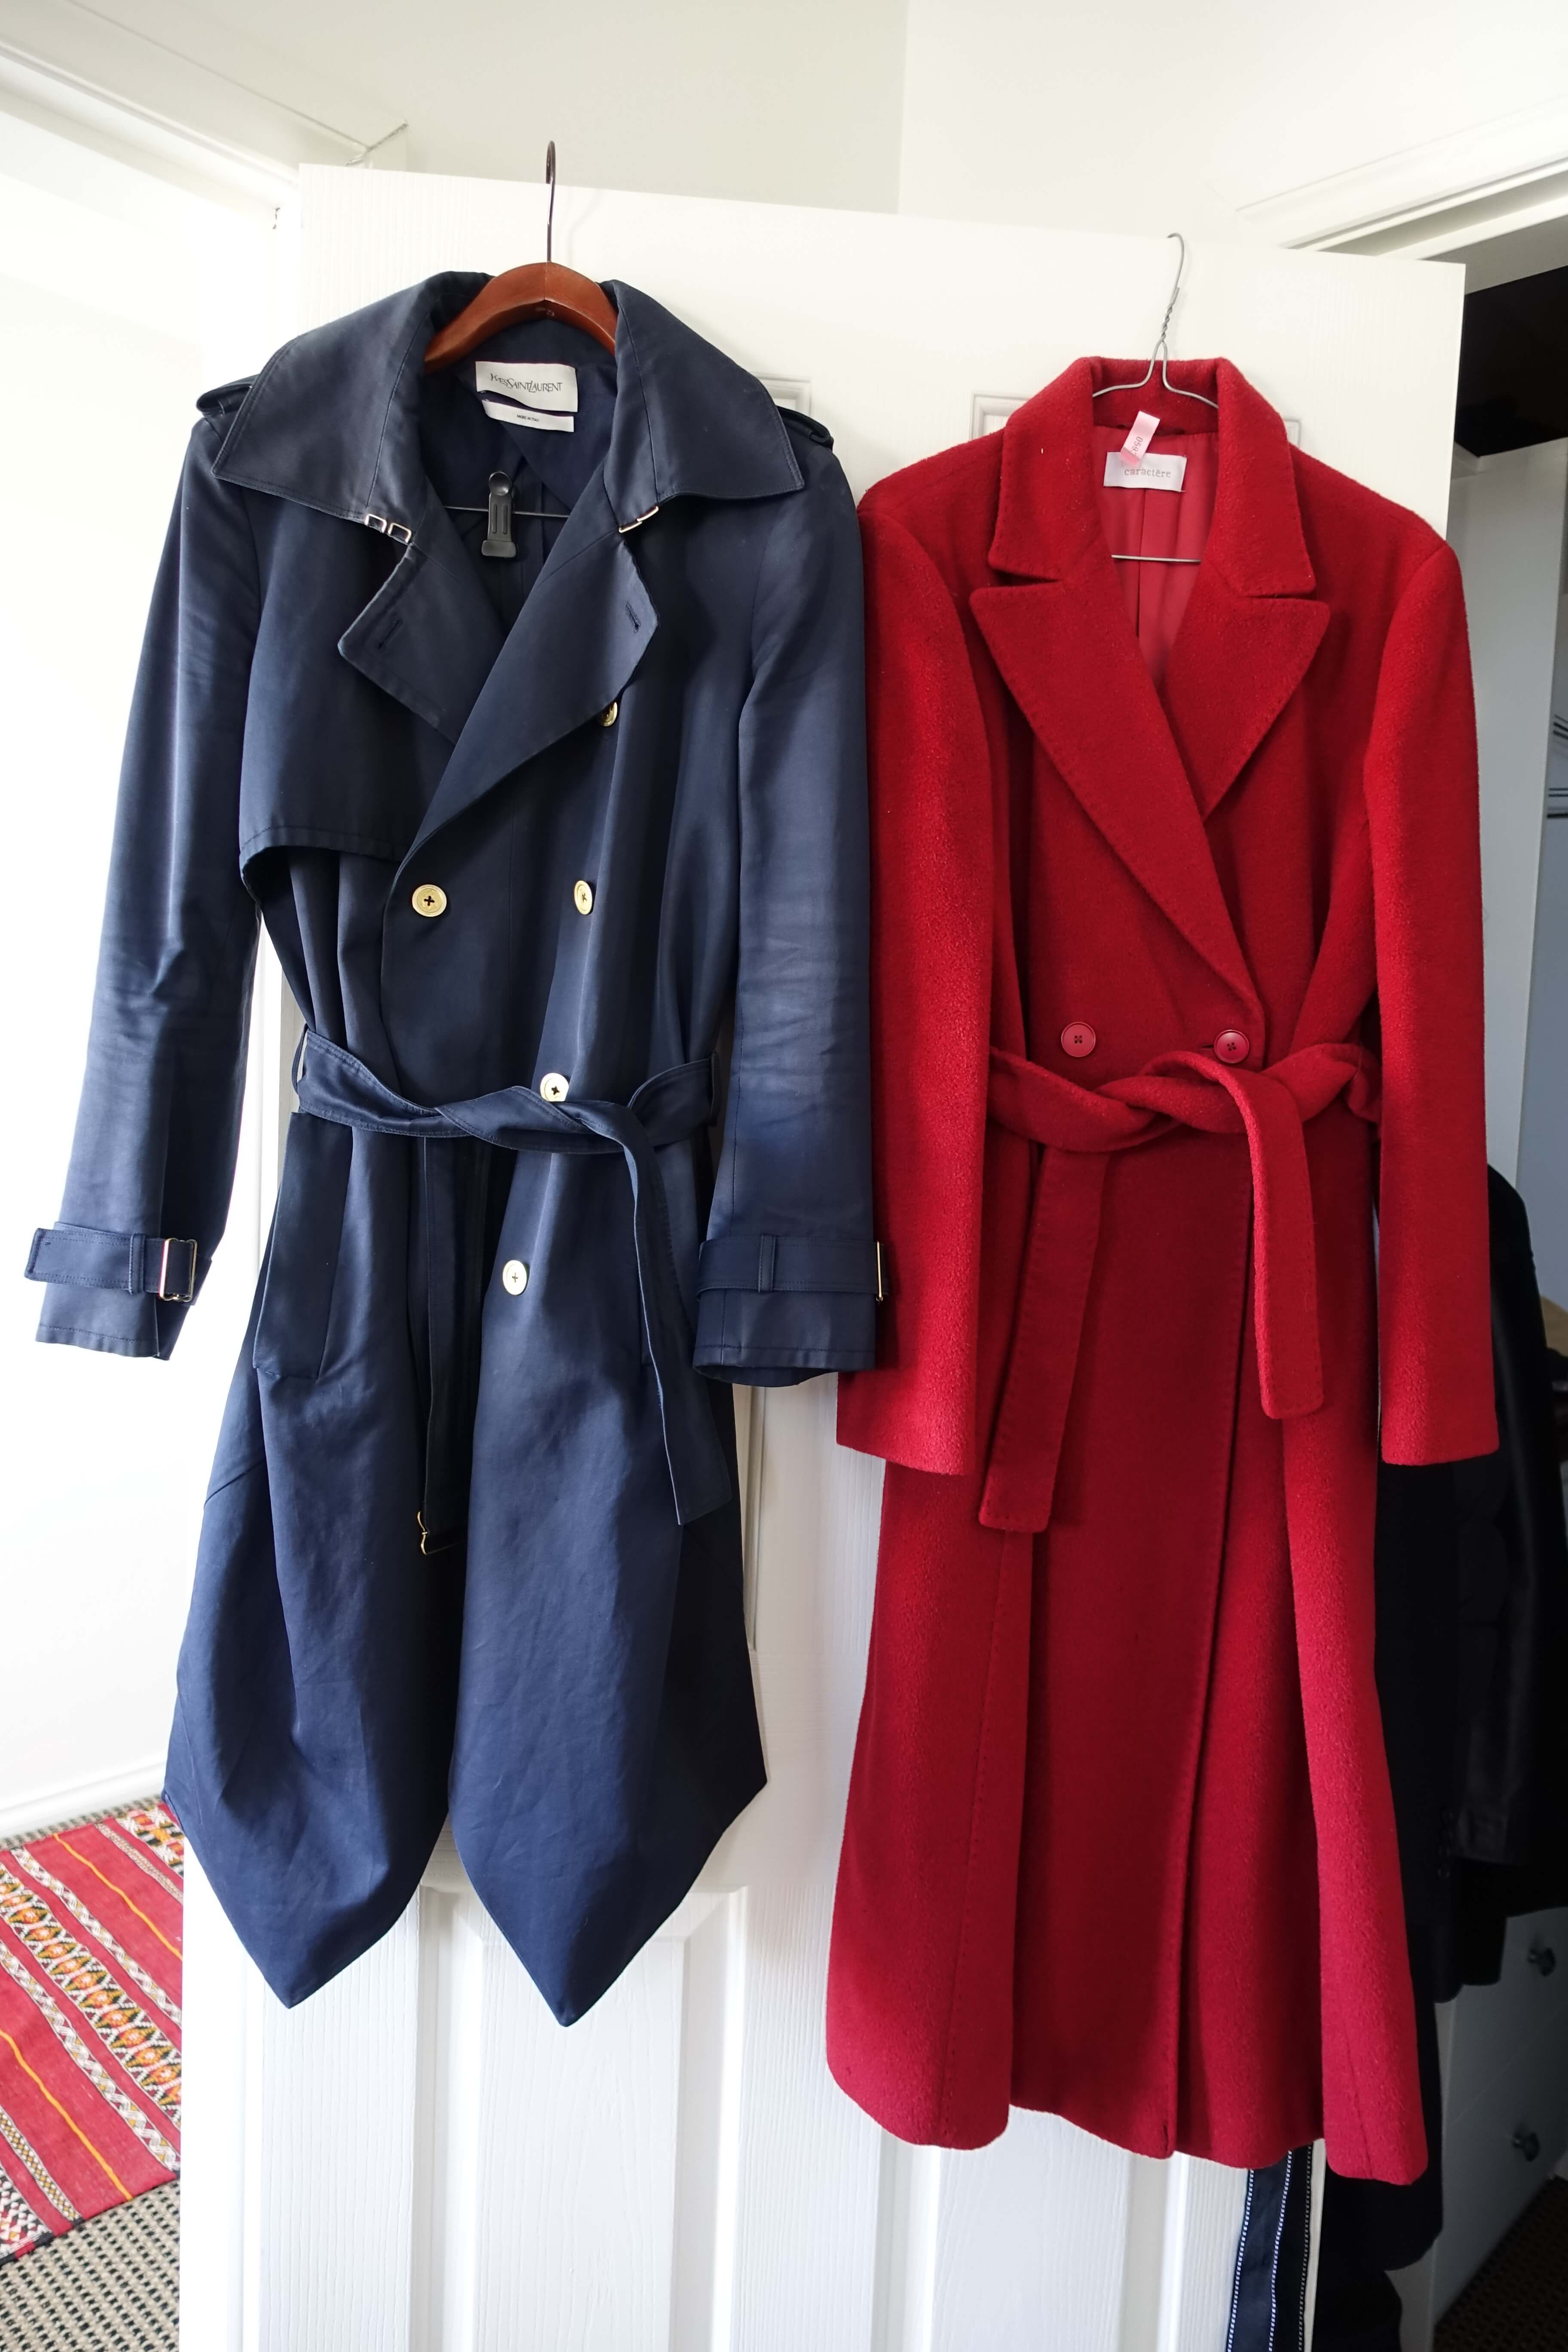 red woollen overcoat and blue YSL trench coat